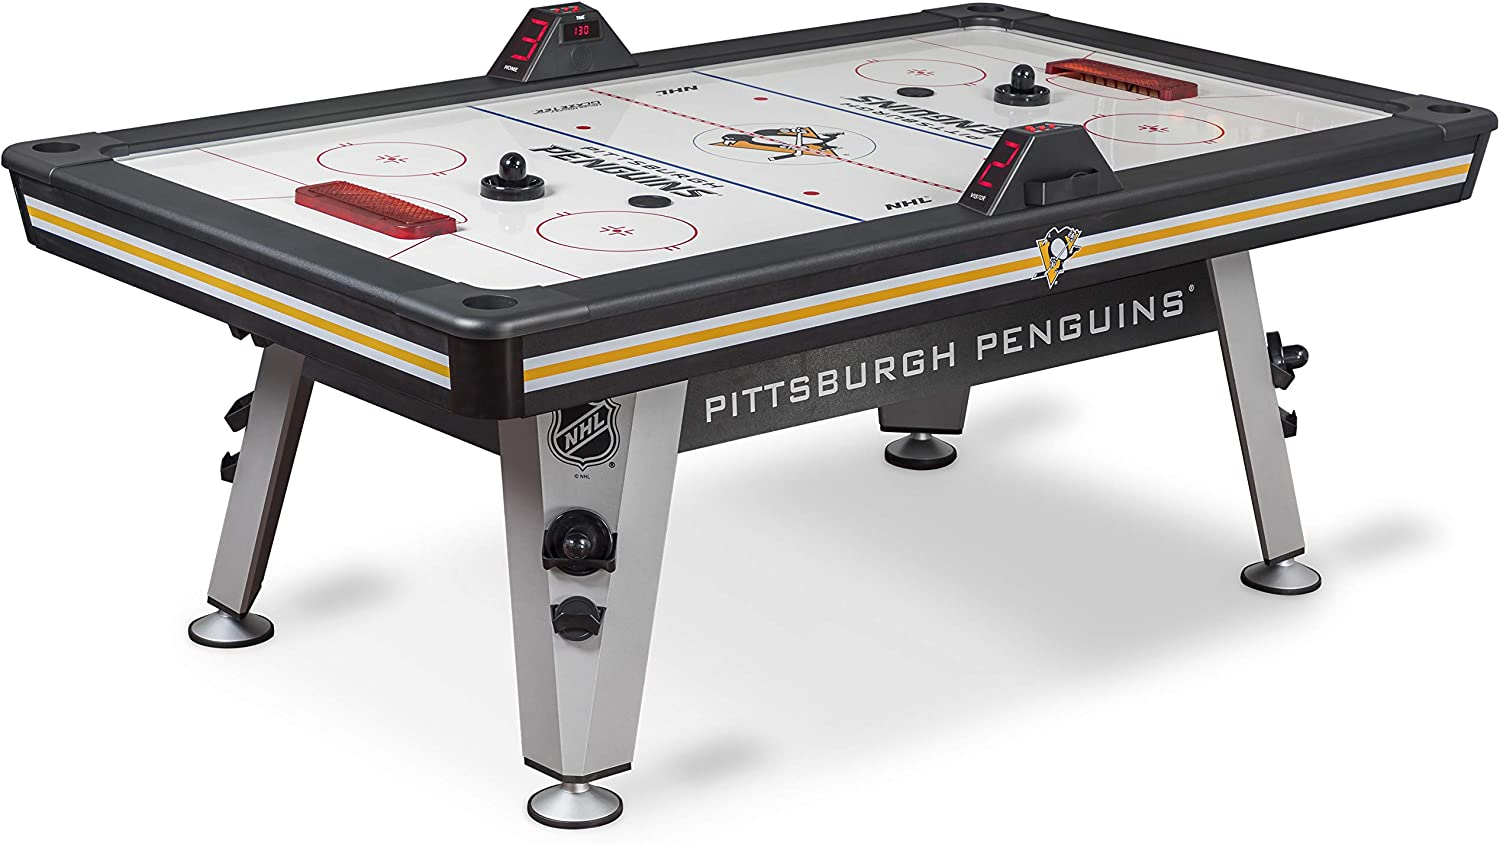 Top 10 Best Air Hockey Table for Kids (2020 Reviews & Guide) 3